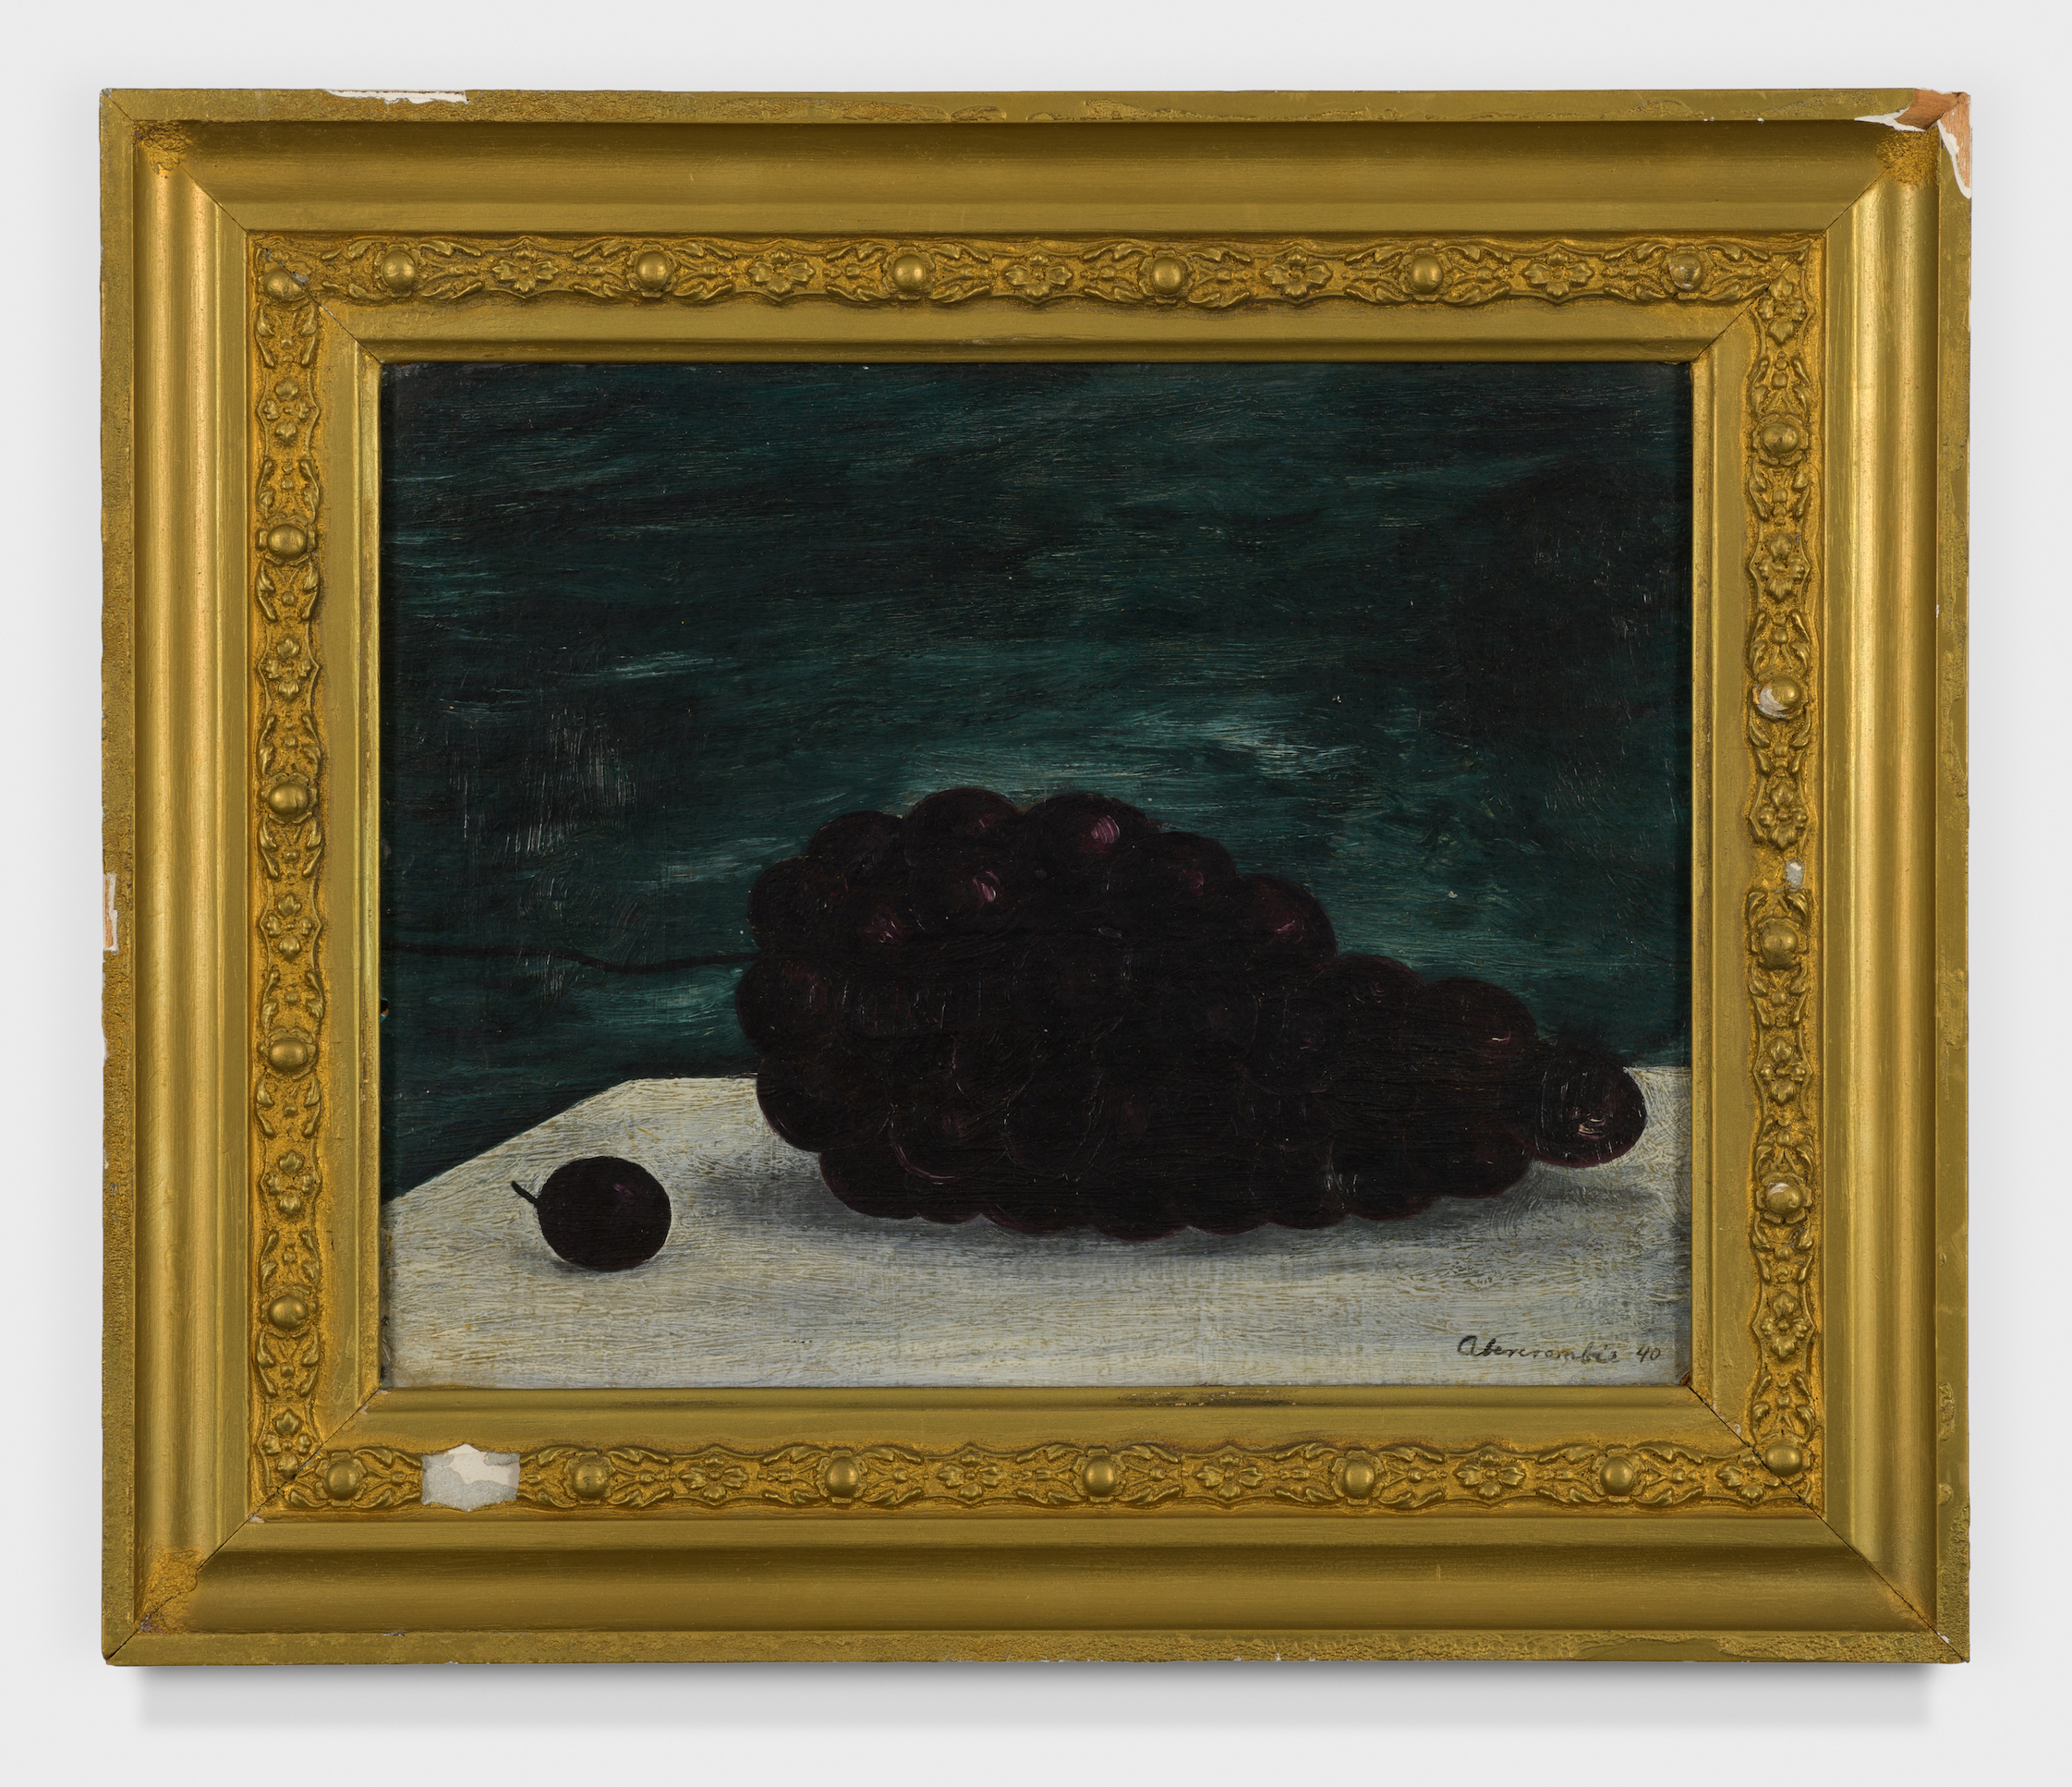 Grapes , 1940, Oil on panel, 8 1/4 × 10 inches (unframed); 11 1/2 × 13 1/2 inches (framed). From the collection of the late Emma N. Loeb.